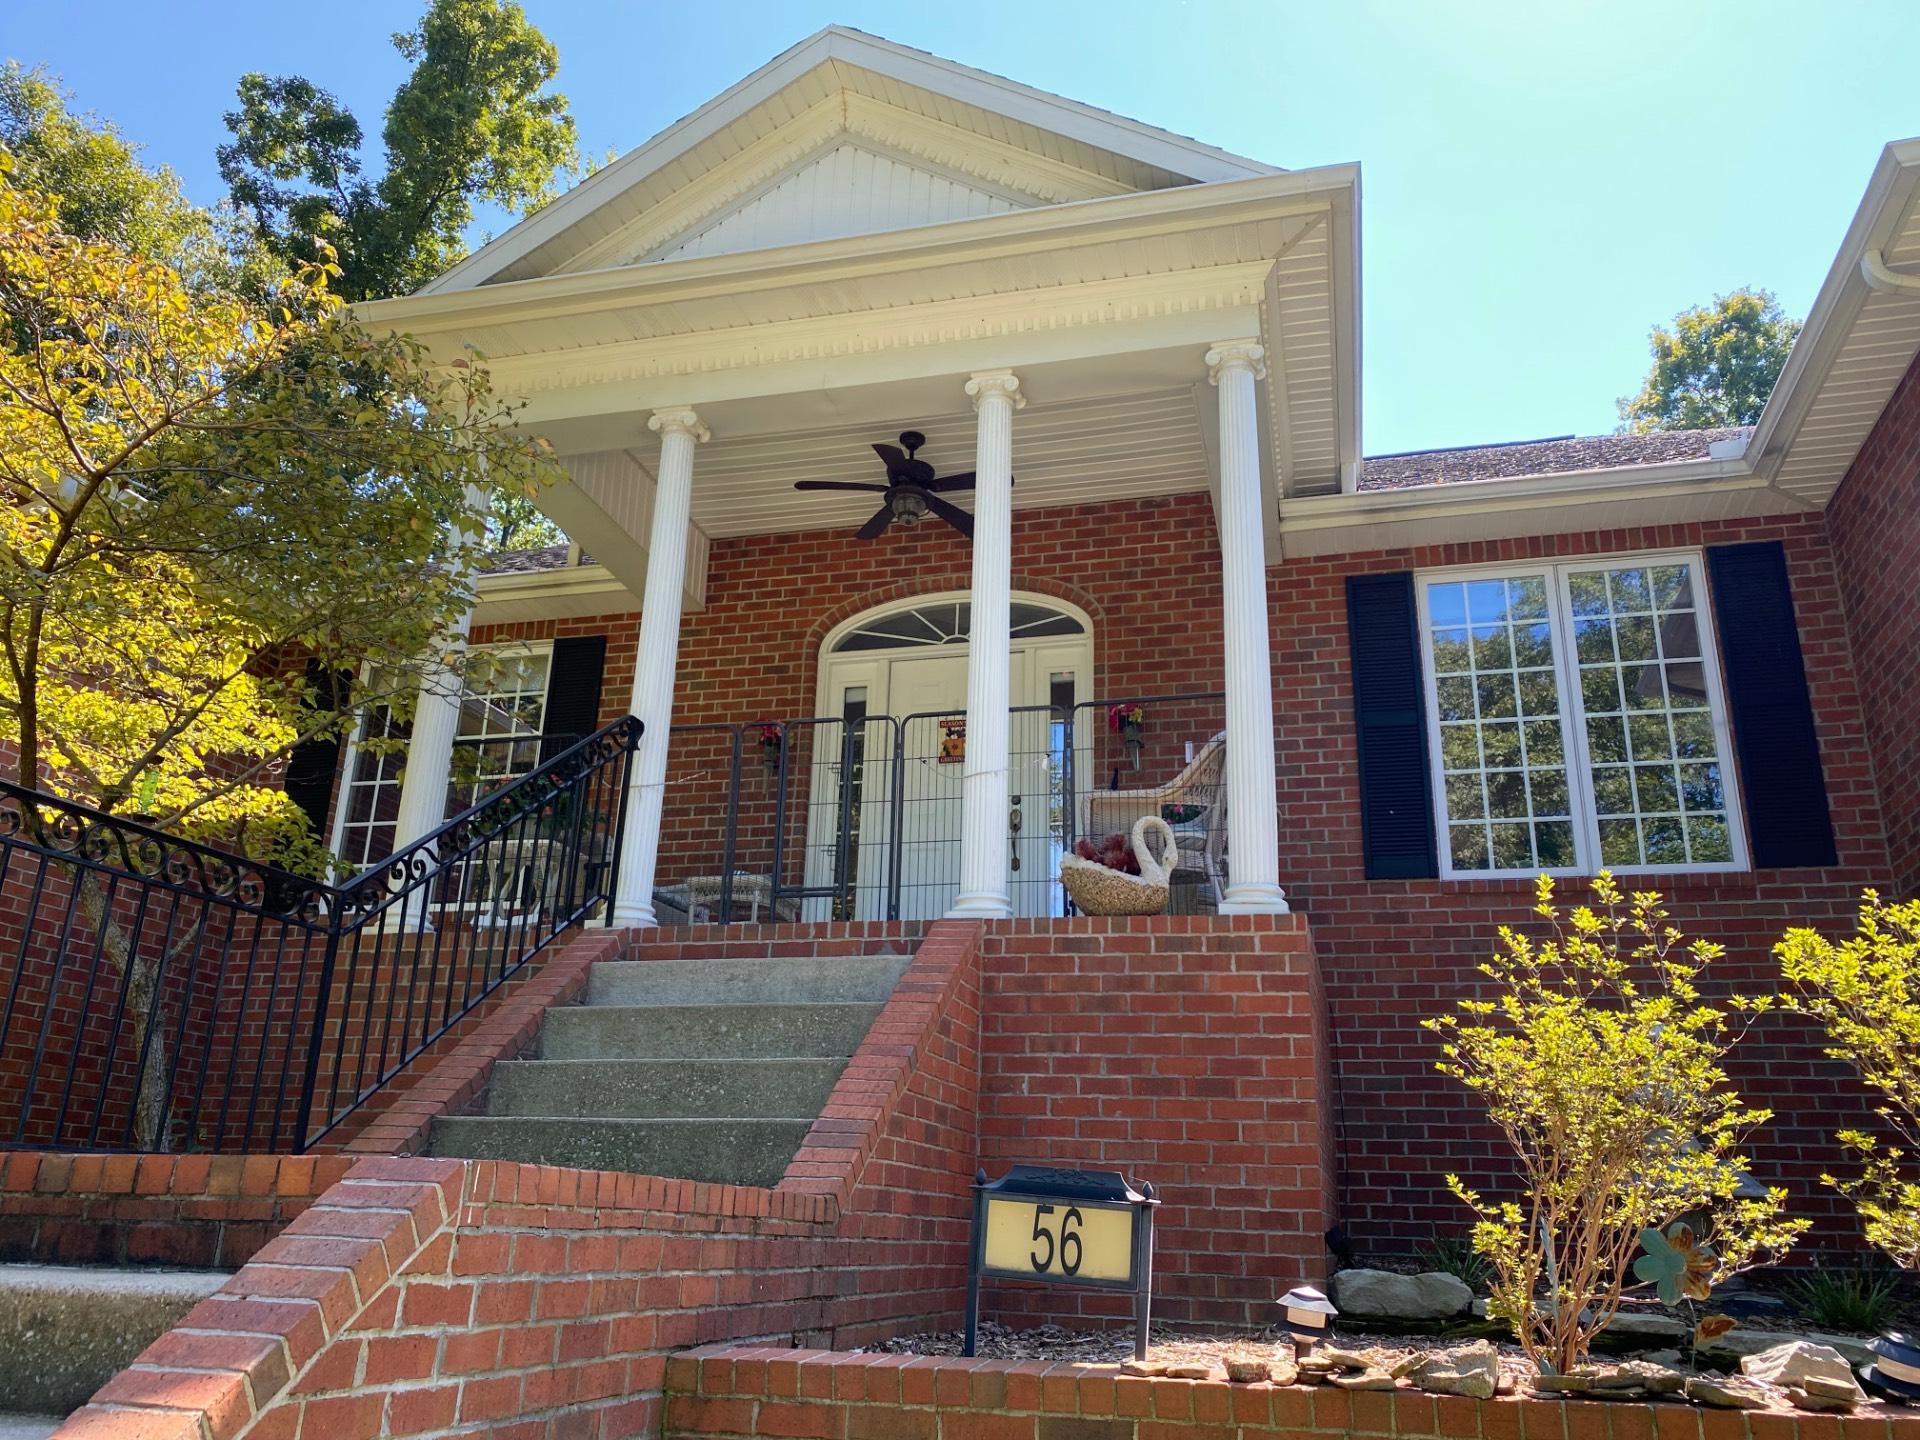 Elegant and impressive brick home with secluded backyard!